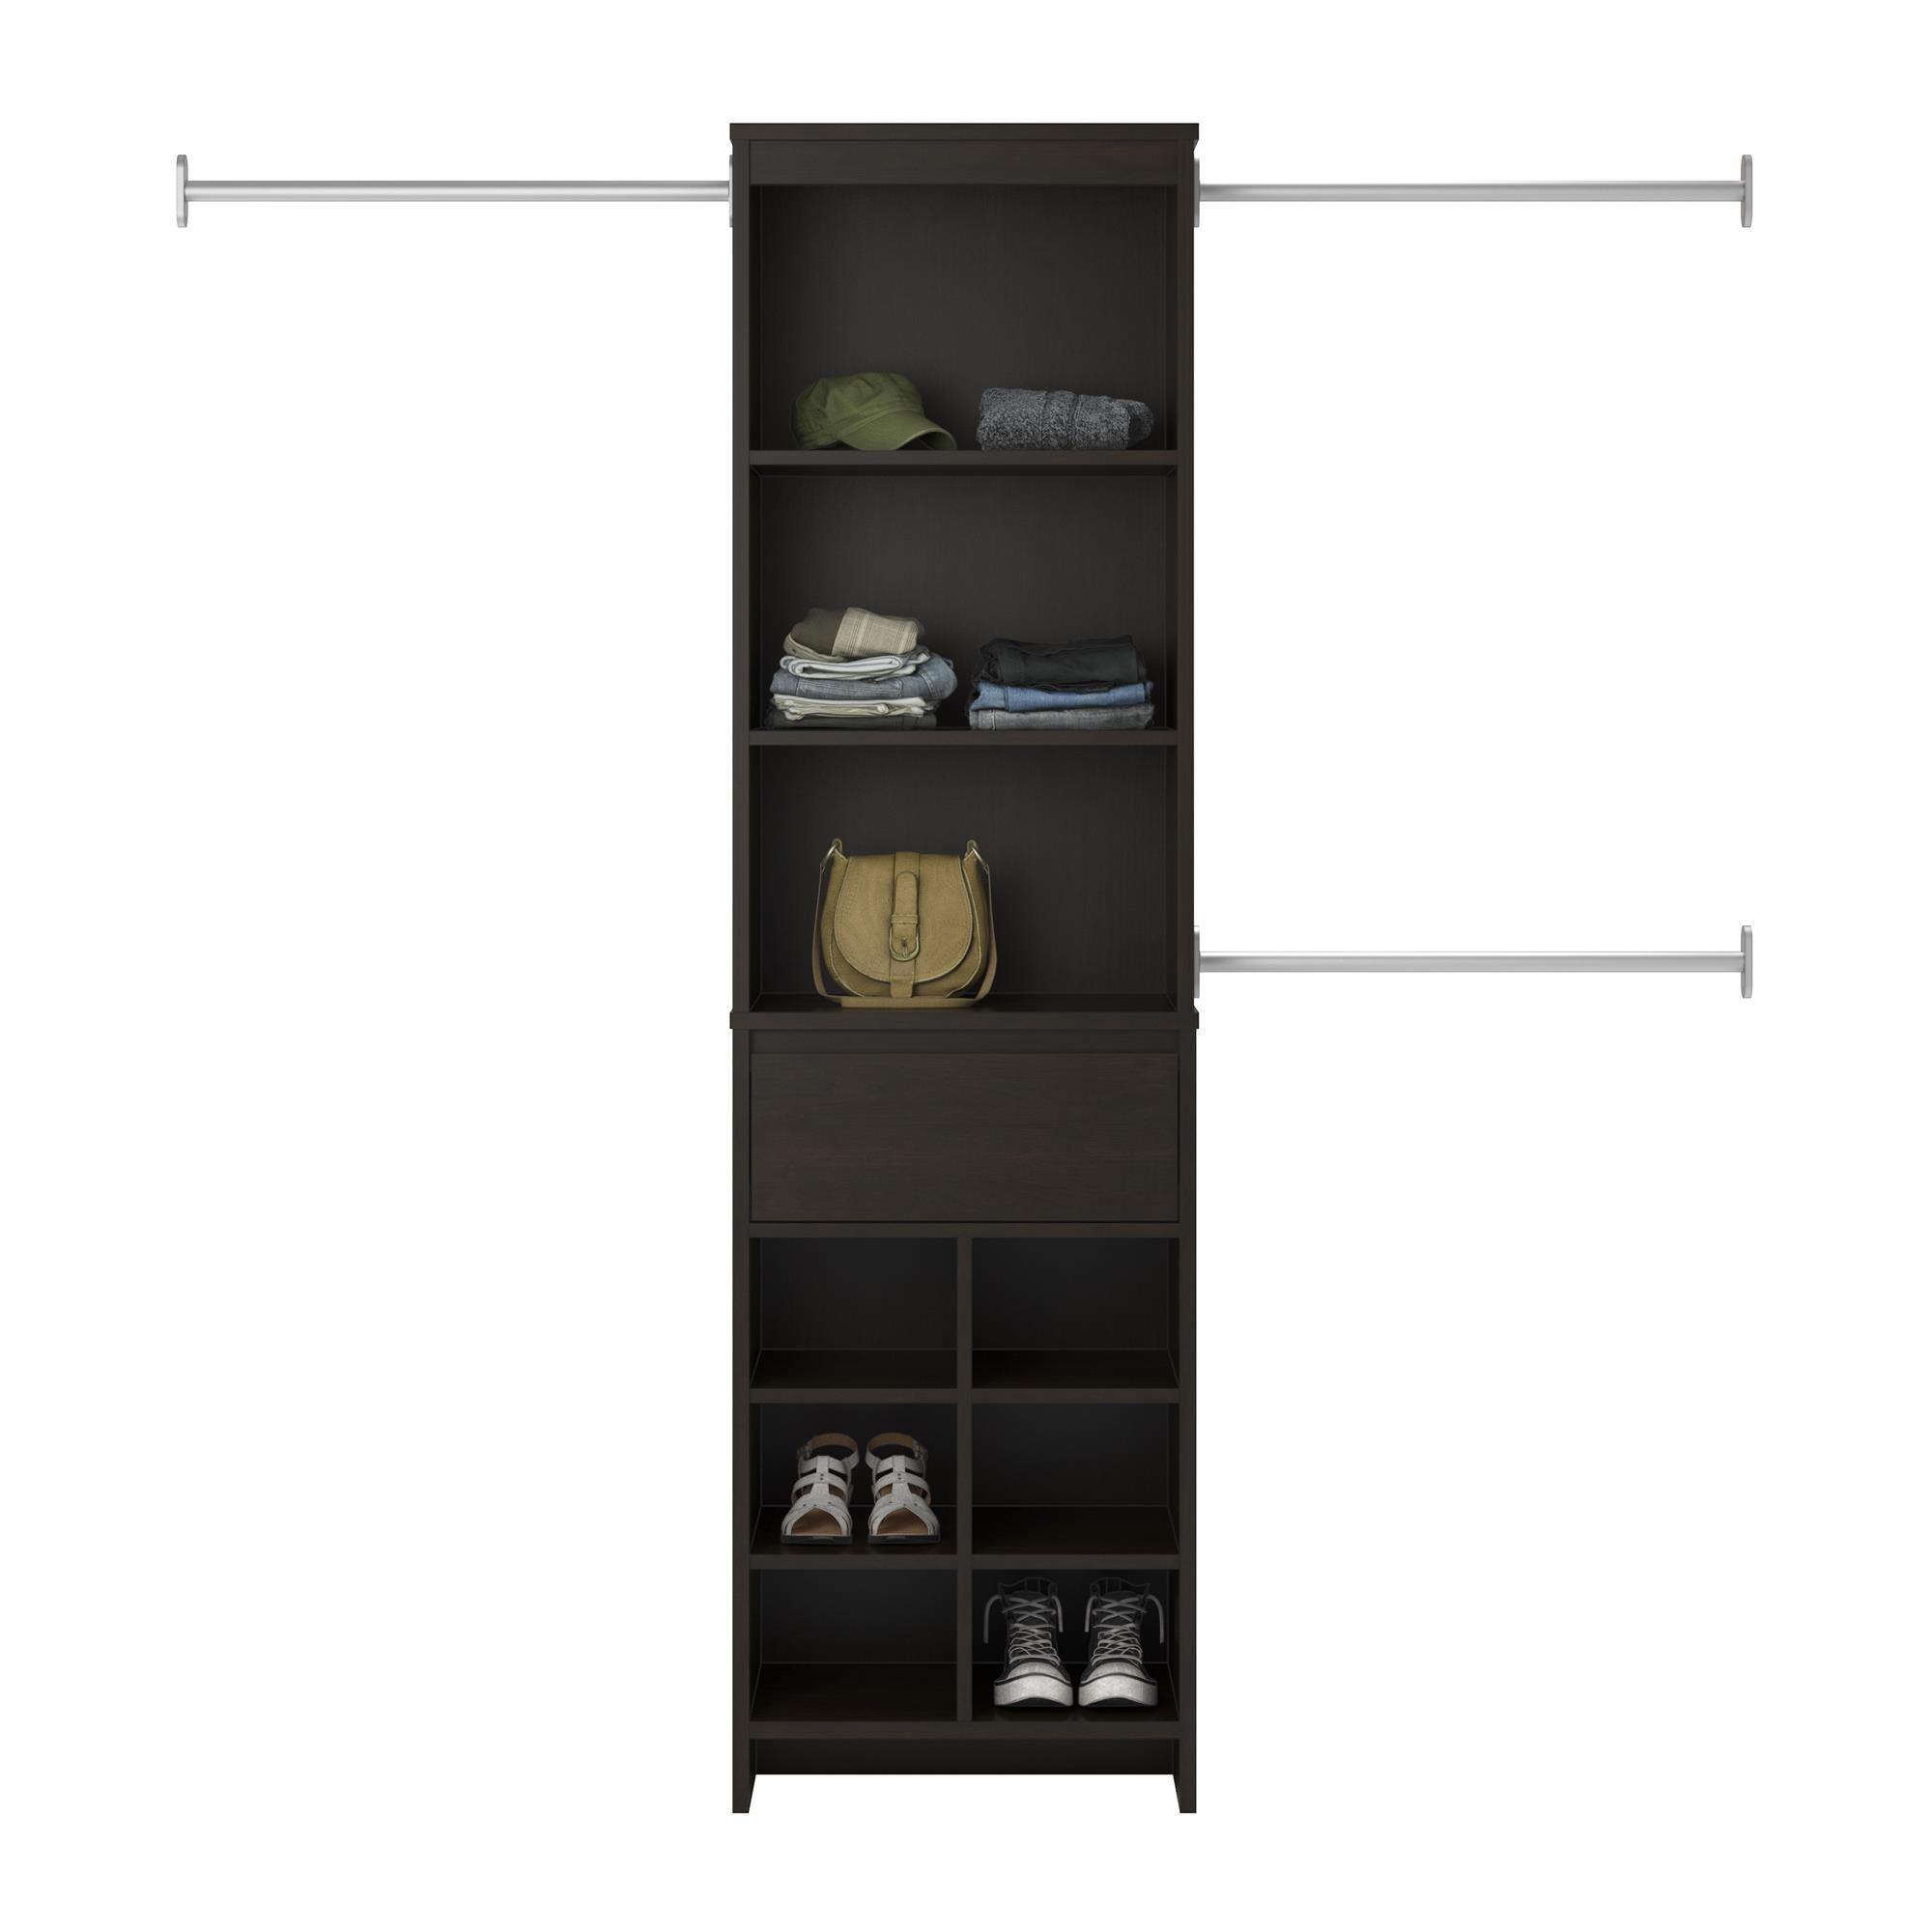 Ameriwood Home Adult Closet System, Espresso by Ameriwood Home (Image #7)